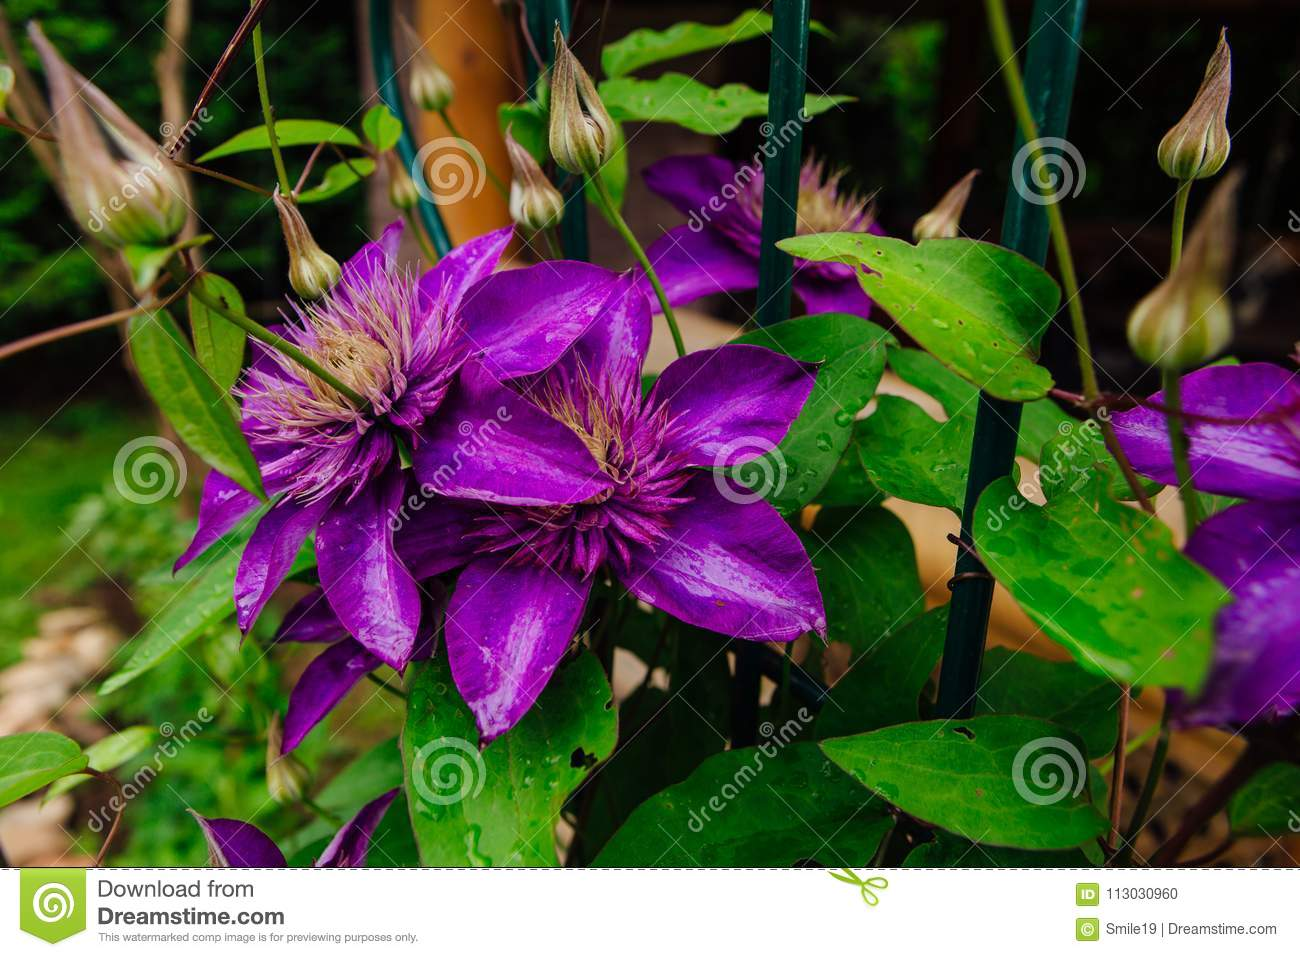 Big purple flowers named clematis or president flower after rain download big purple flowers named clematis or president flower after rain stock photo image of mightylinksfo